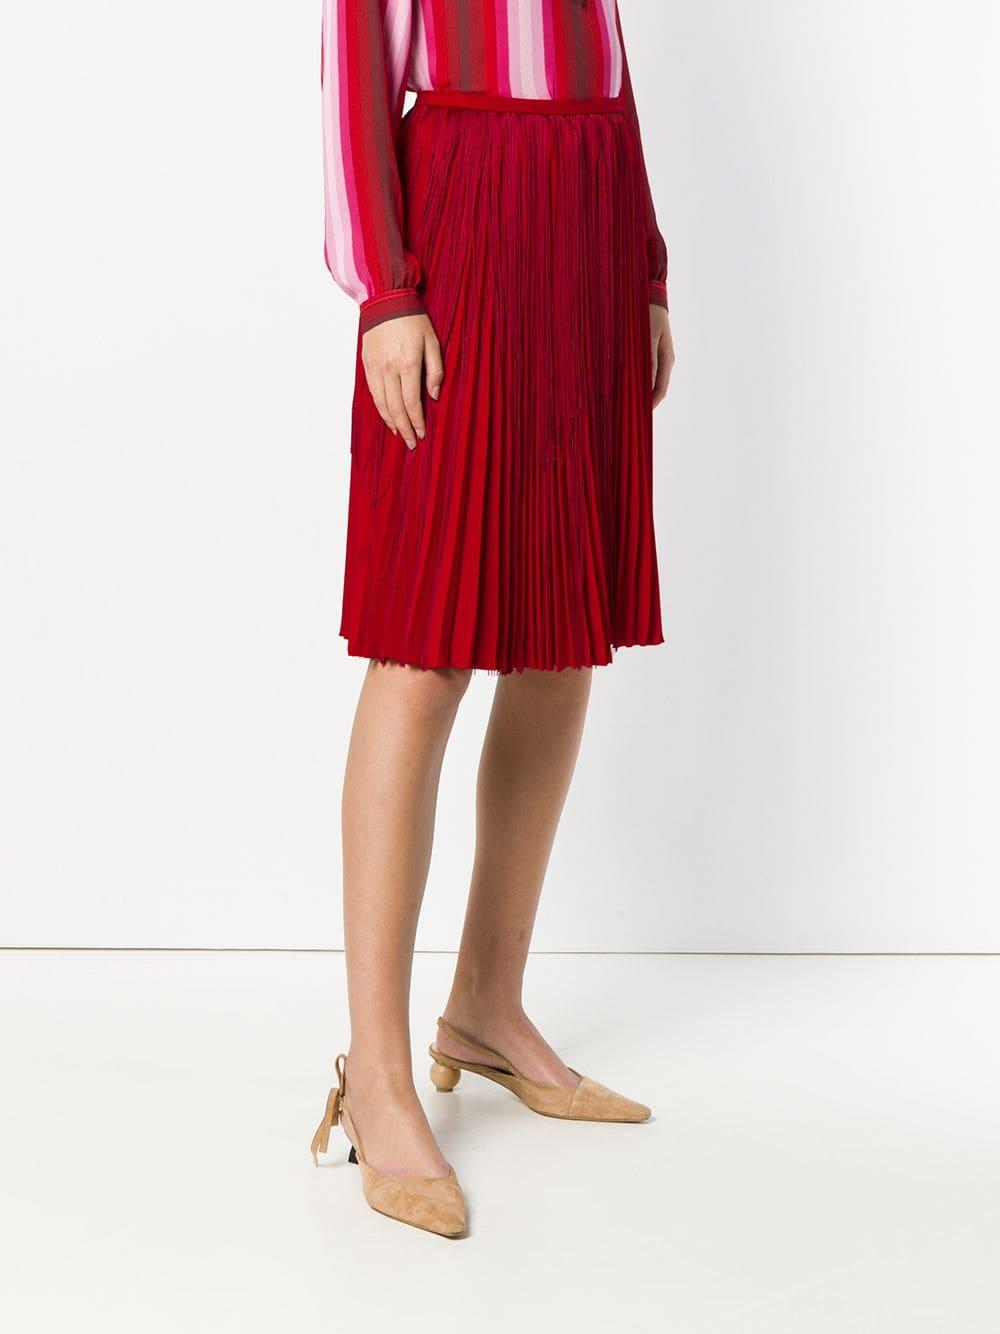 Marco De Vincenzo Fringed Pleated Skirt in Red